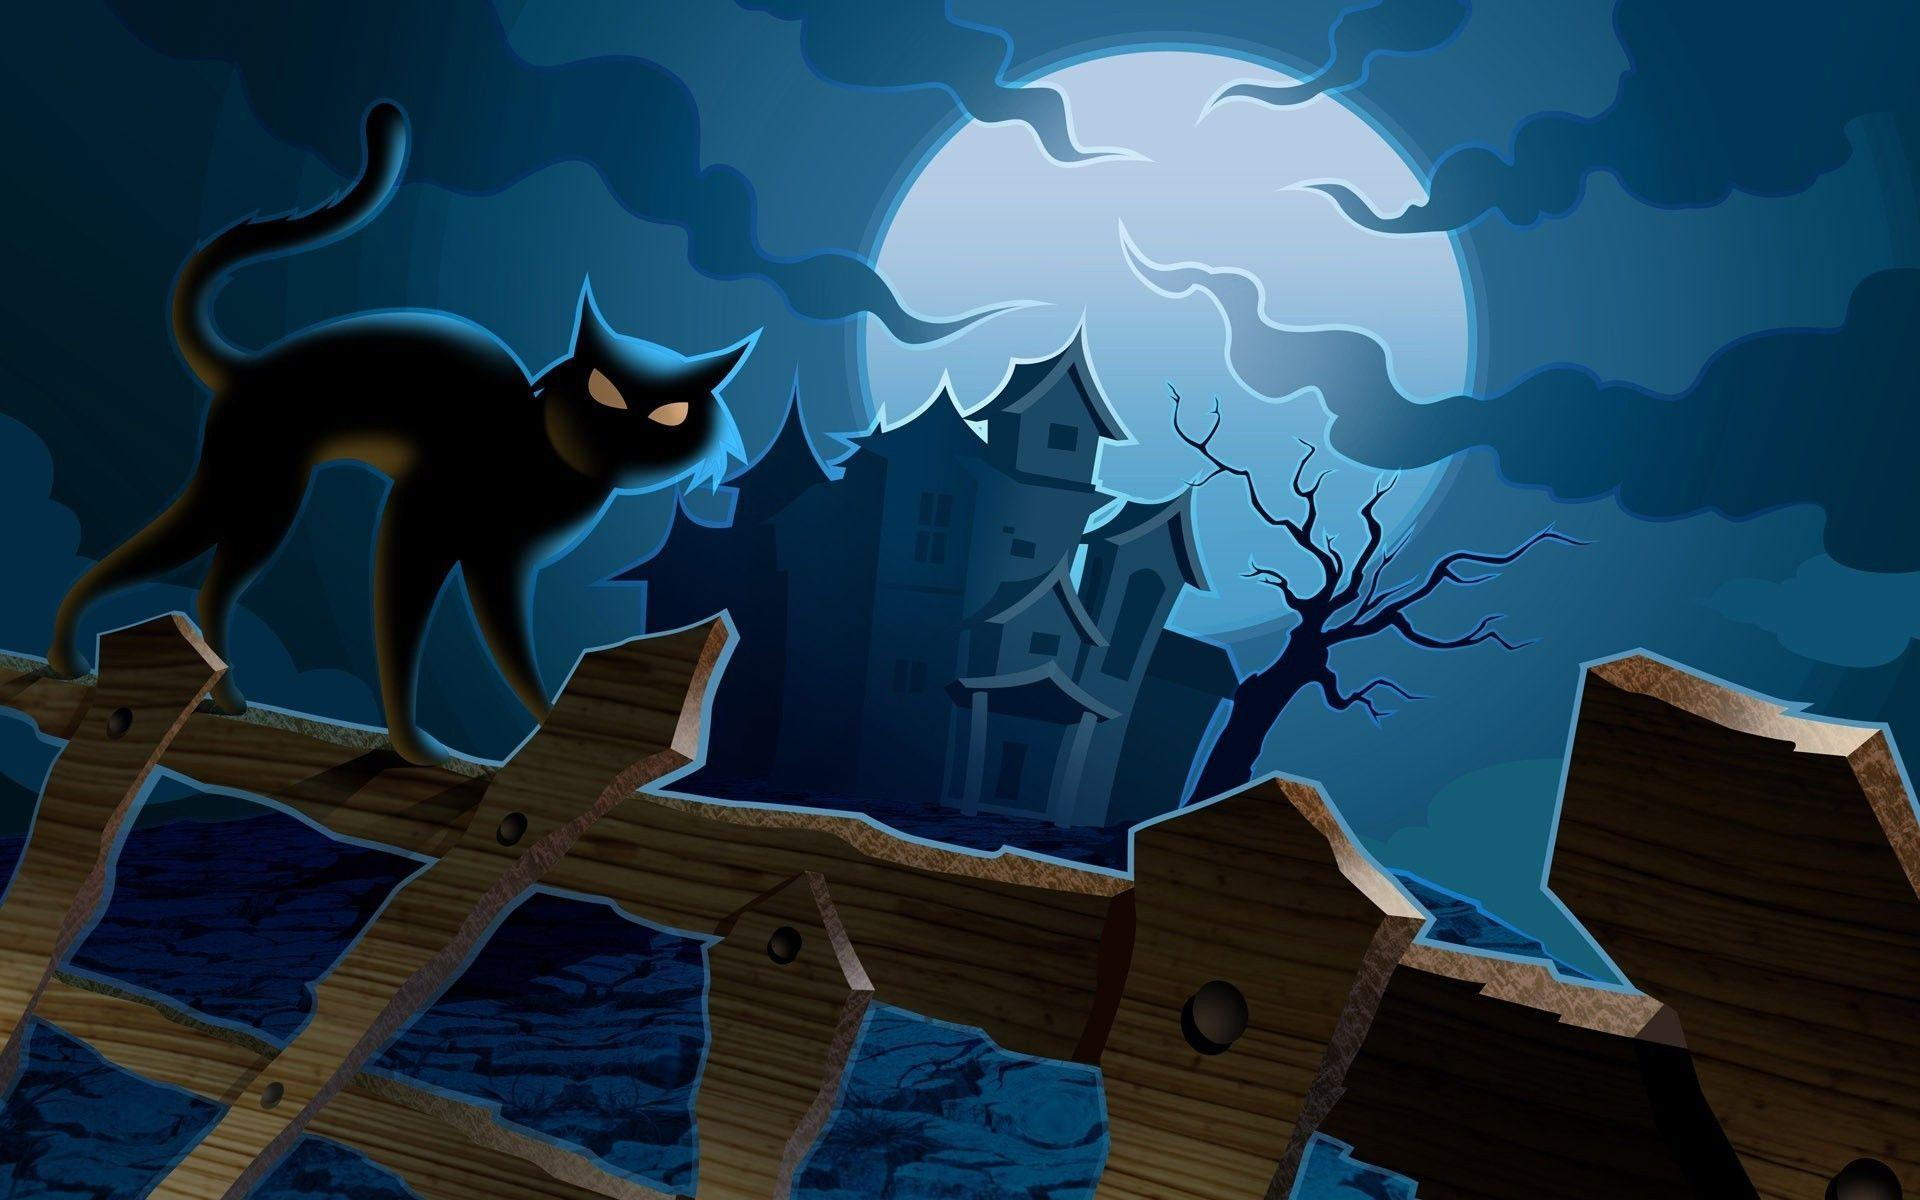 Halloween wallpaper - 696468